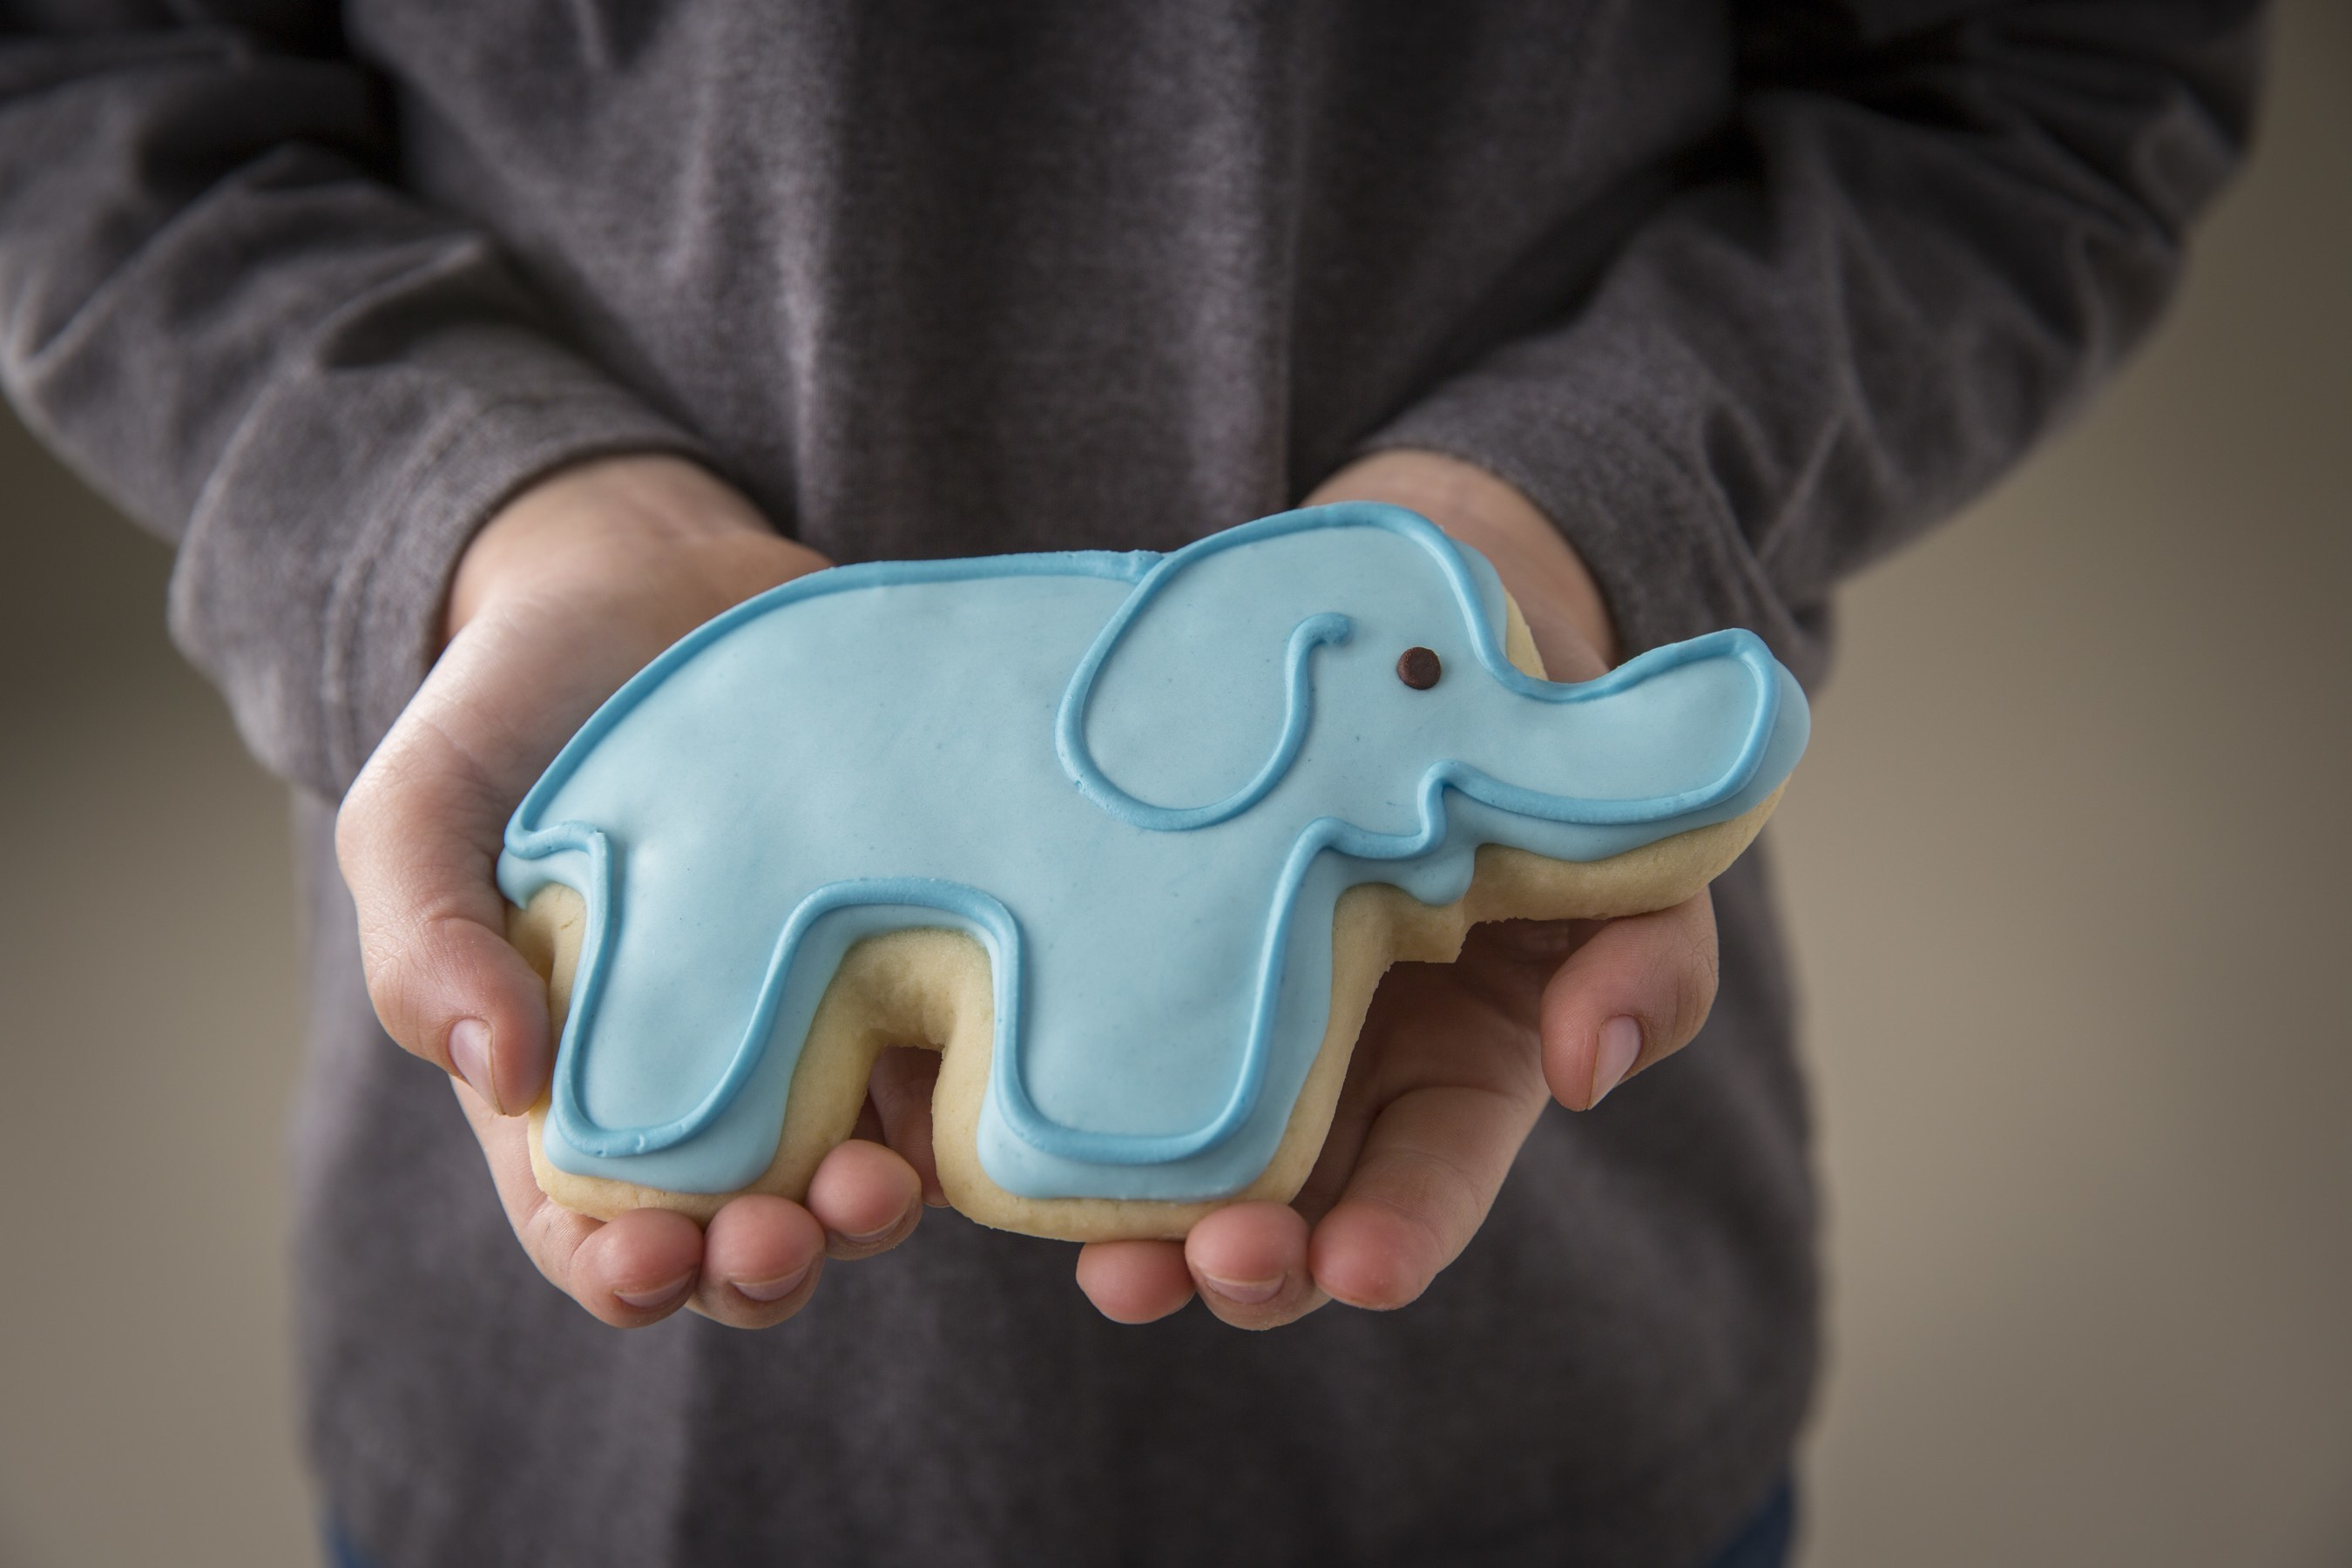 Throughout the month of September, all 52 Kneaders locations throughout the Western region will be selling elephant-shaped sugar cookies. One-hundred percent of the sales will go toward groundbreaking research into elephant DNA that may unlock the cure to childhood cancer.